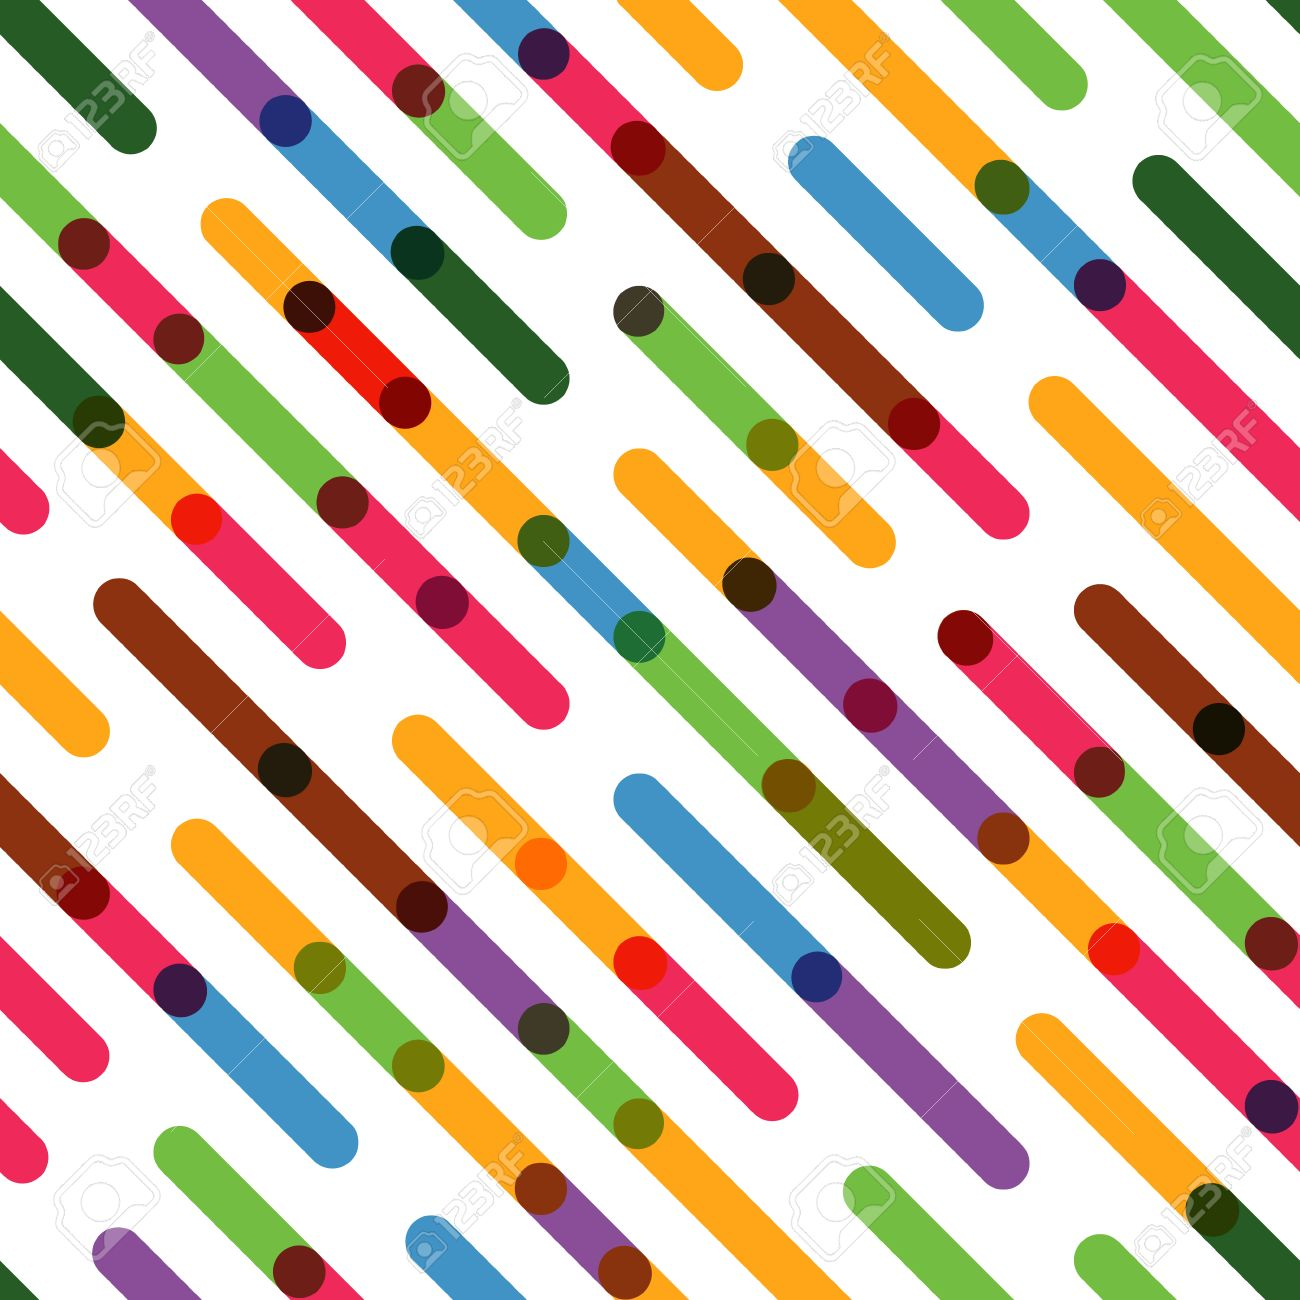 Flat Background With Colorful Diagonal Lines Vector Seamless Pattern For Web Presentations Wallpapers